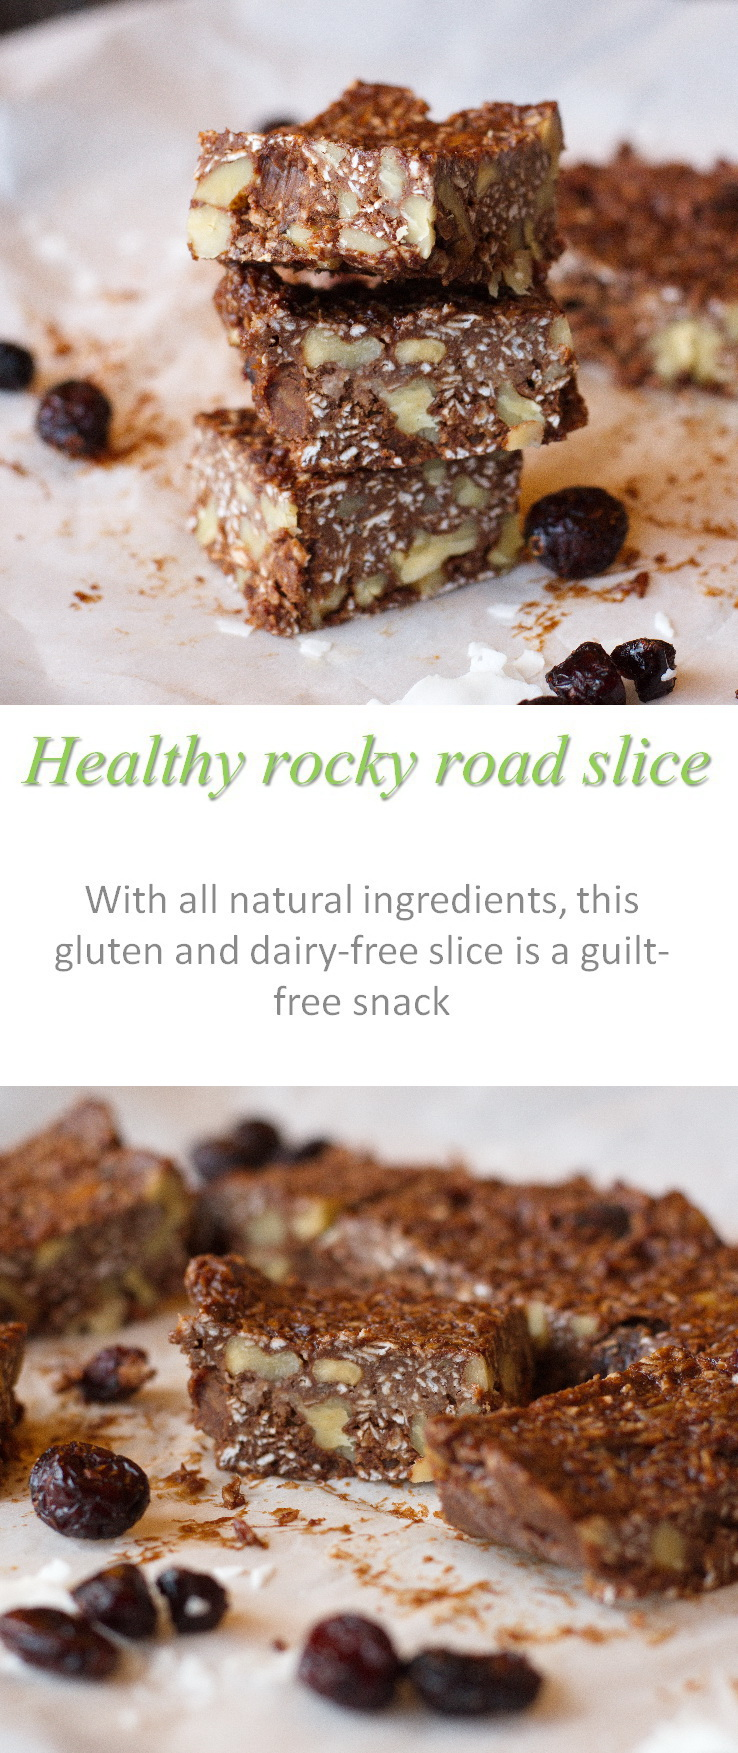 A healthy rocky road slice with all natural ingredients - only 110 calories per piece #rockyroad